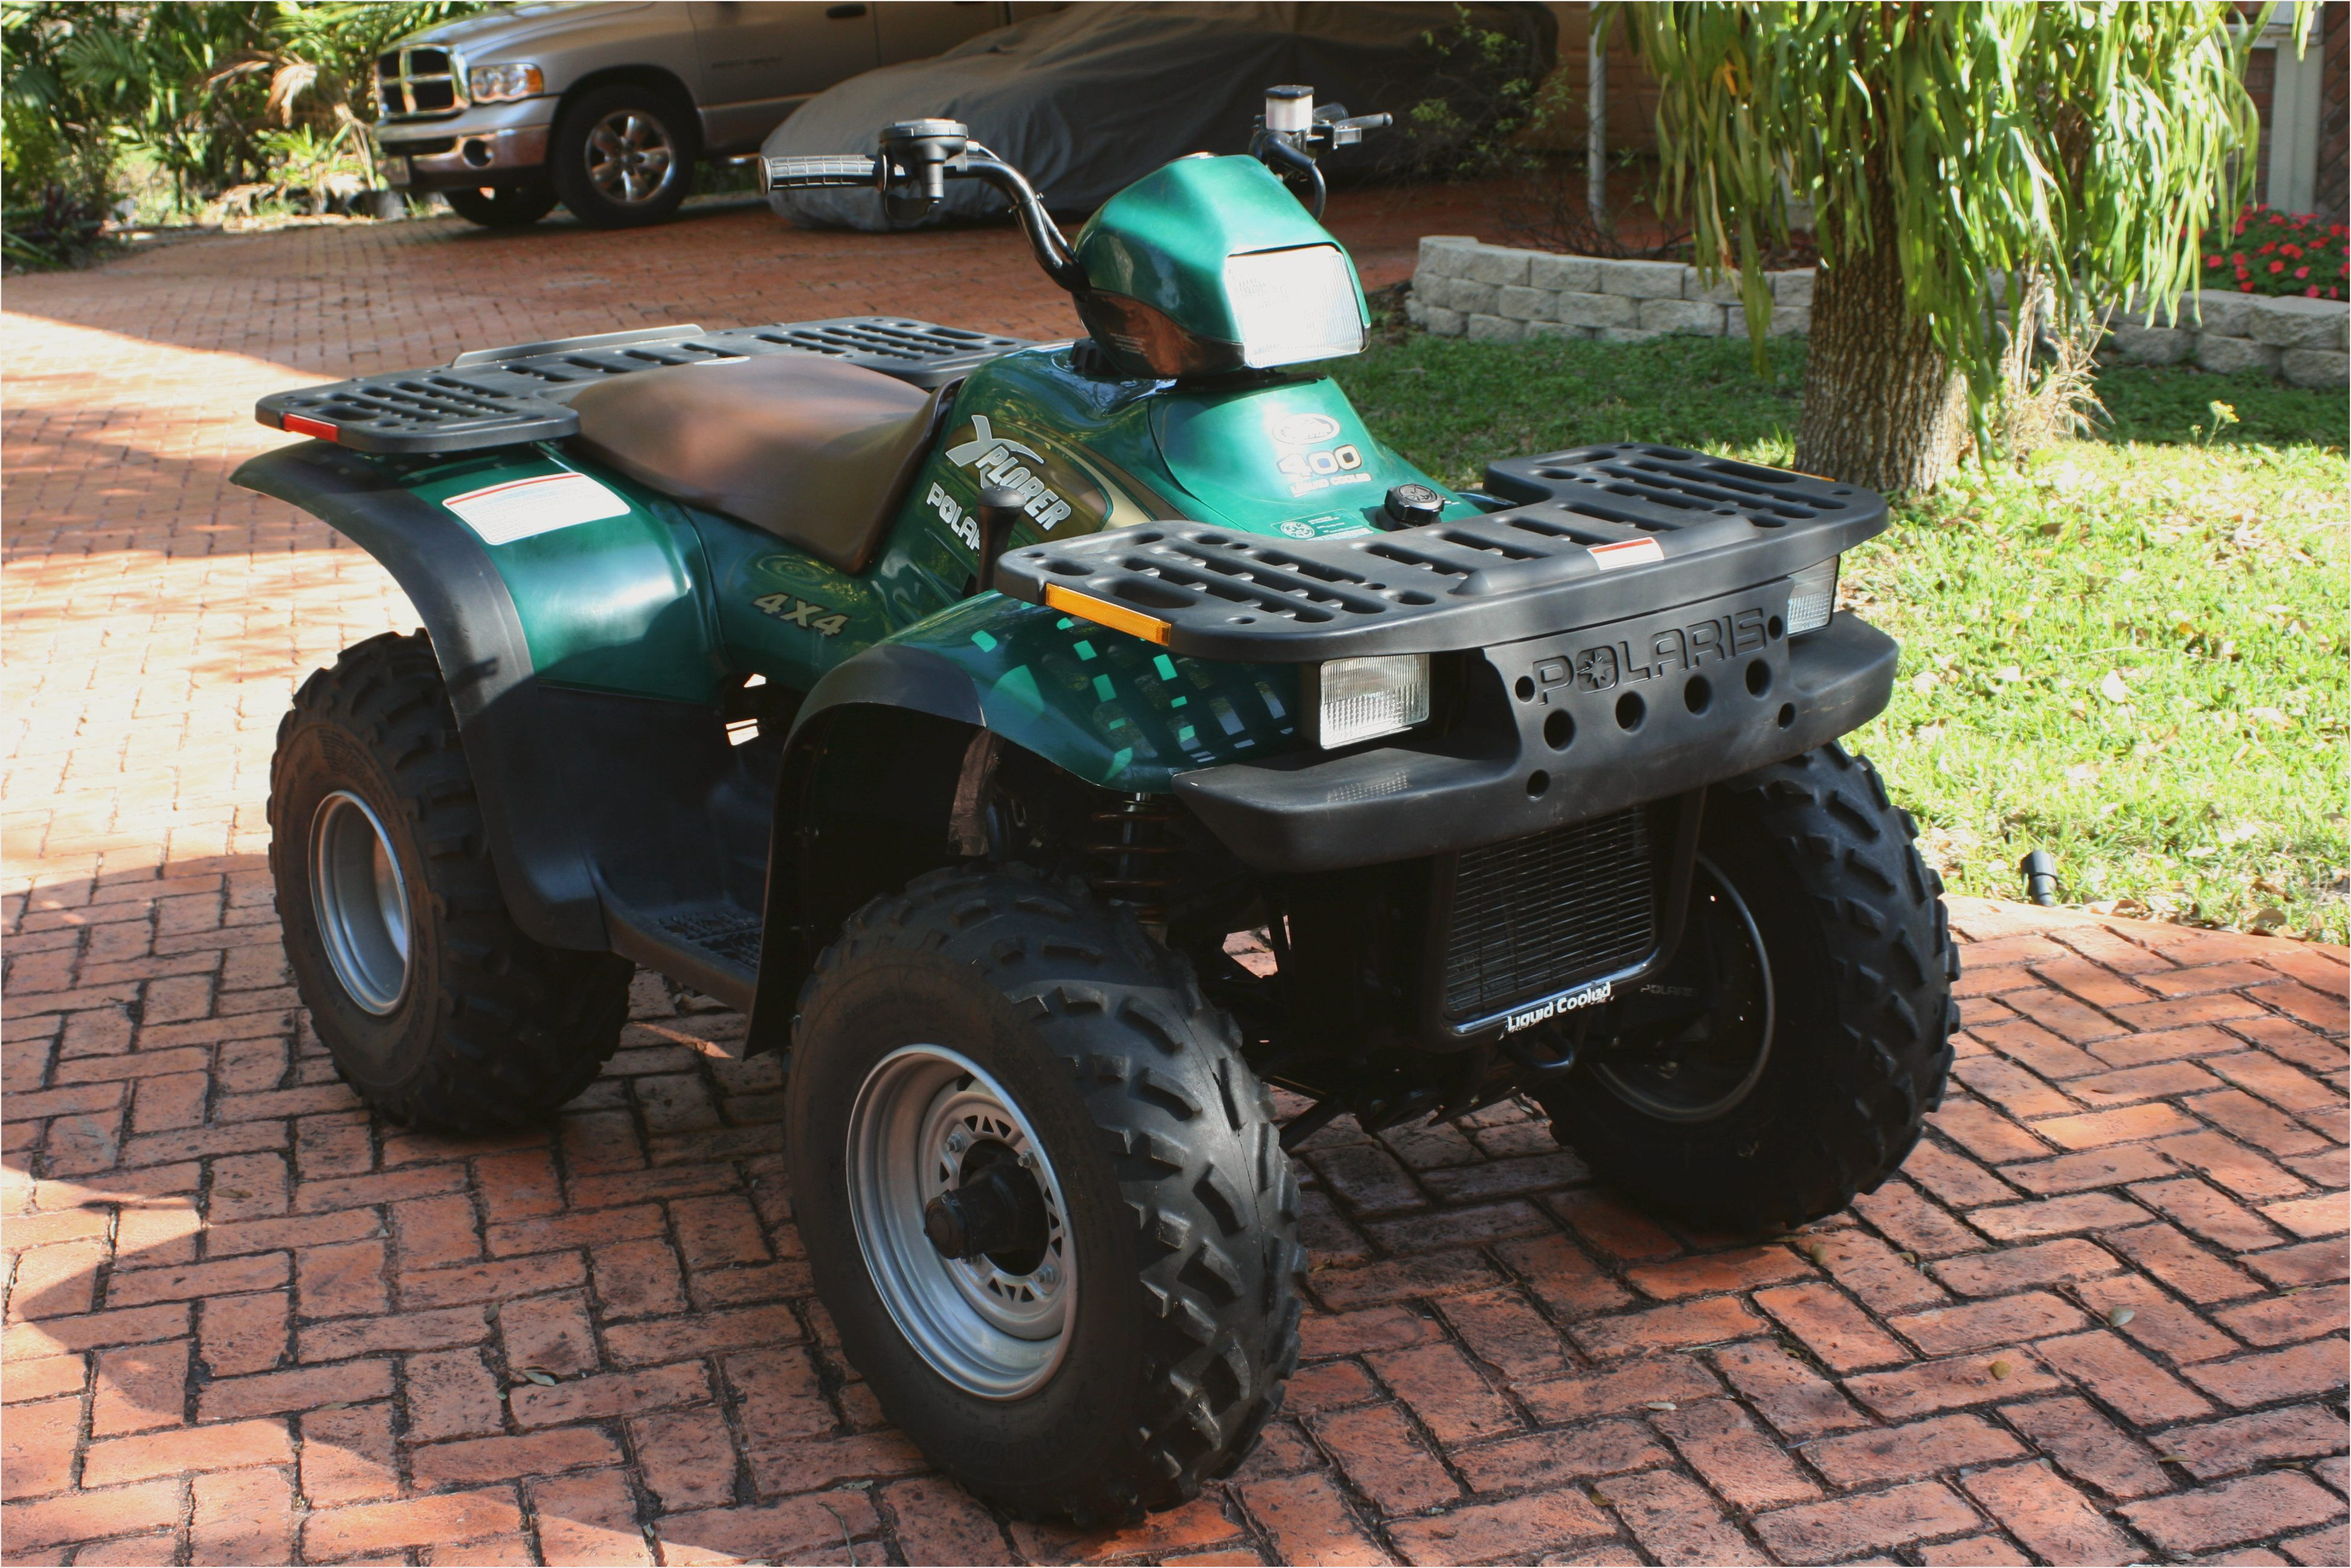 Polaris Xplorer 400 2000 images #120854